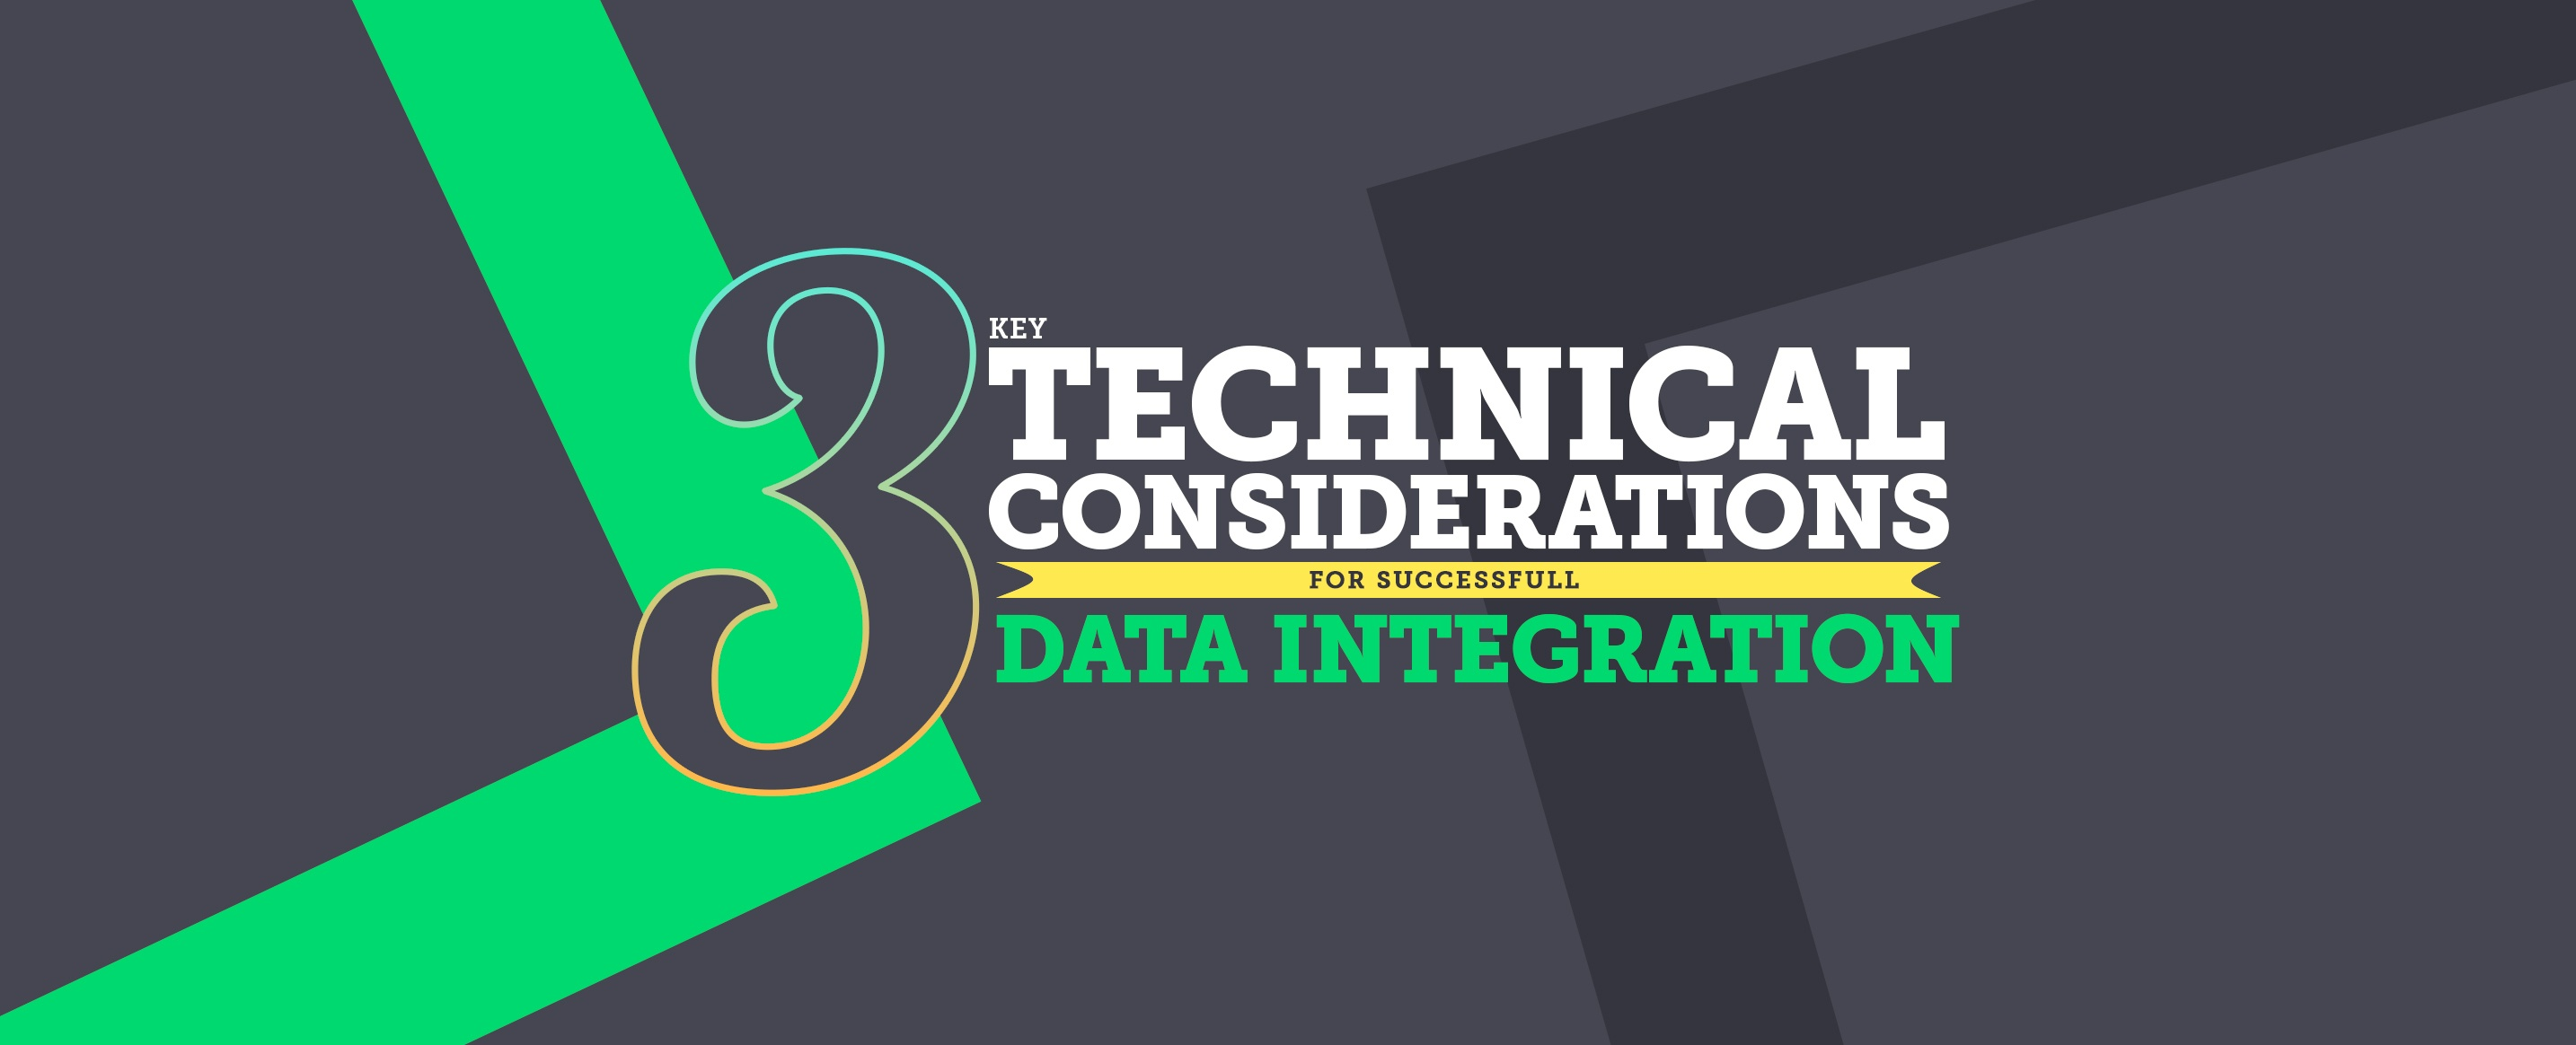 3-Key-Technical-Considerations-For-Successful-Data-Integration